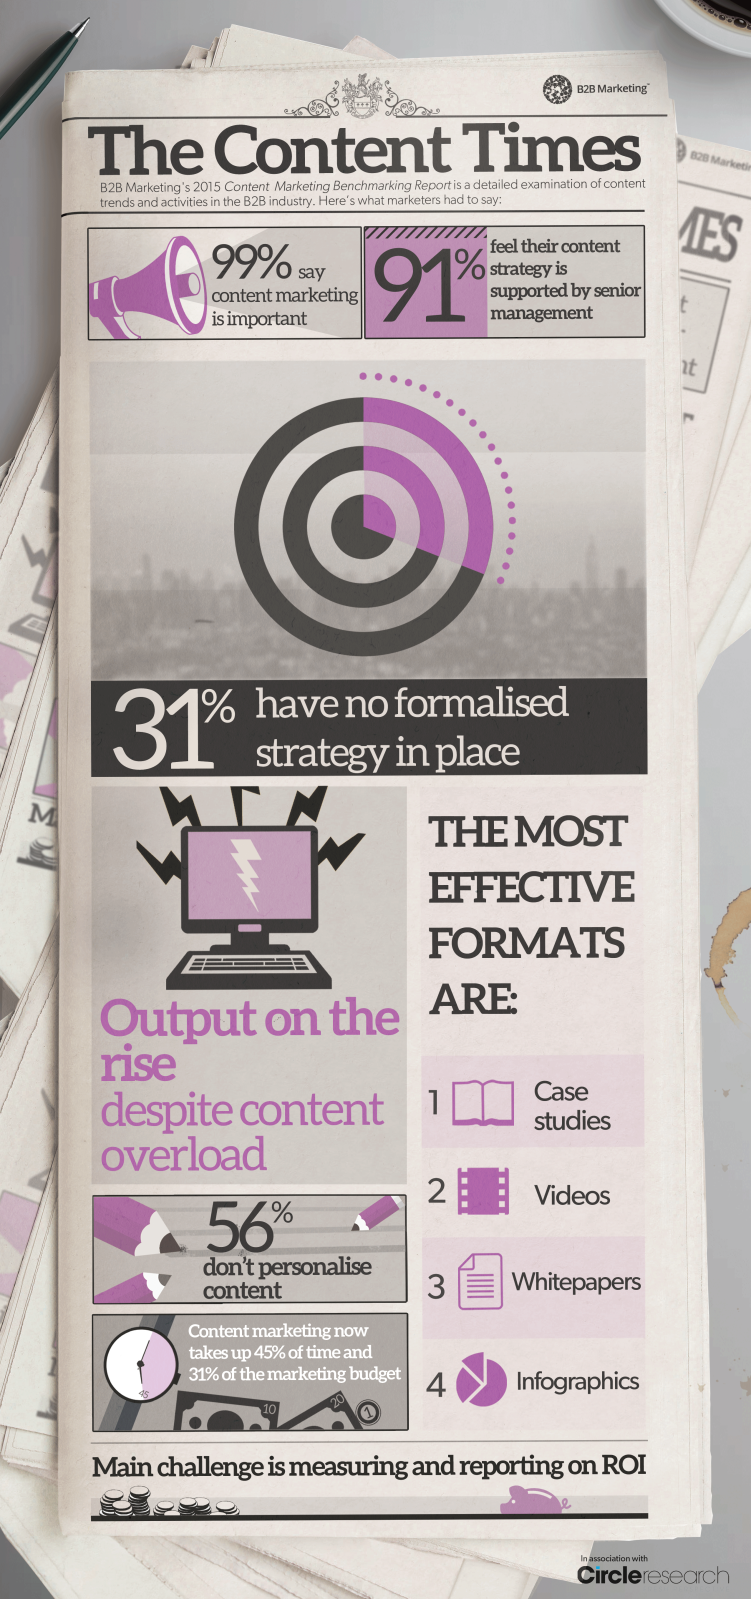 Check out our new 'Content Times' infographic created from the findings of report: http://t.co/lOmQDCUWuq #B2BContent http://t.co/faDBcX0z5X